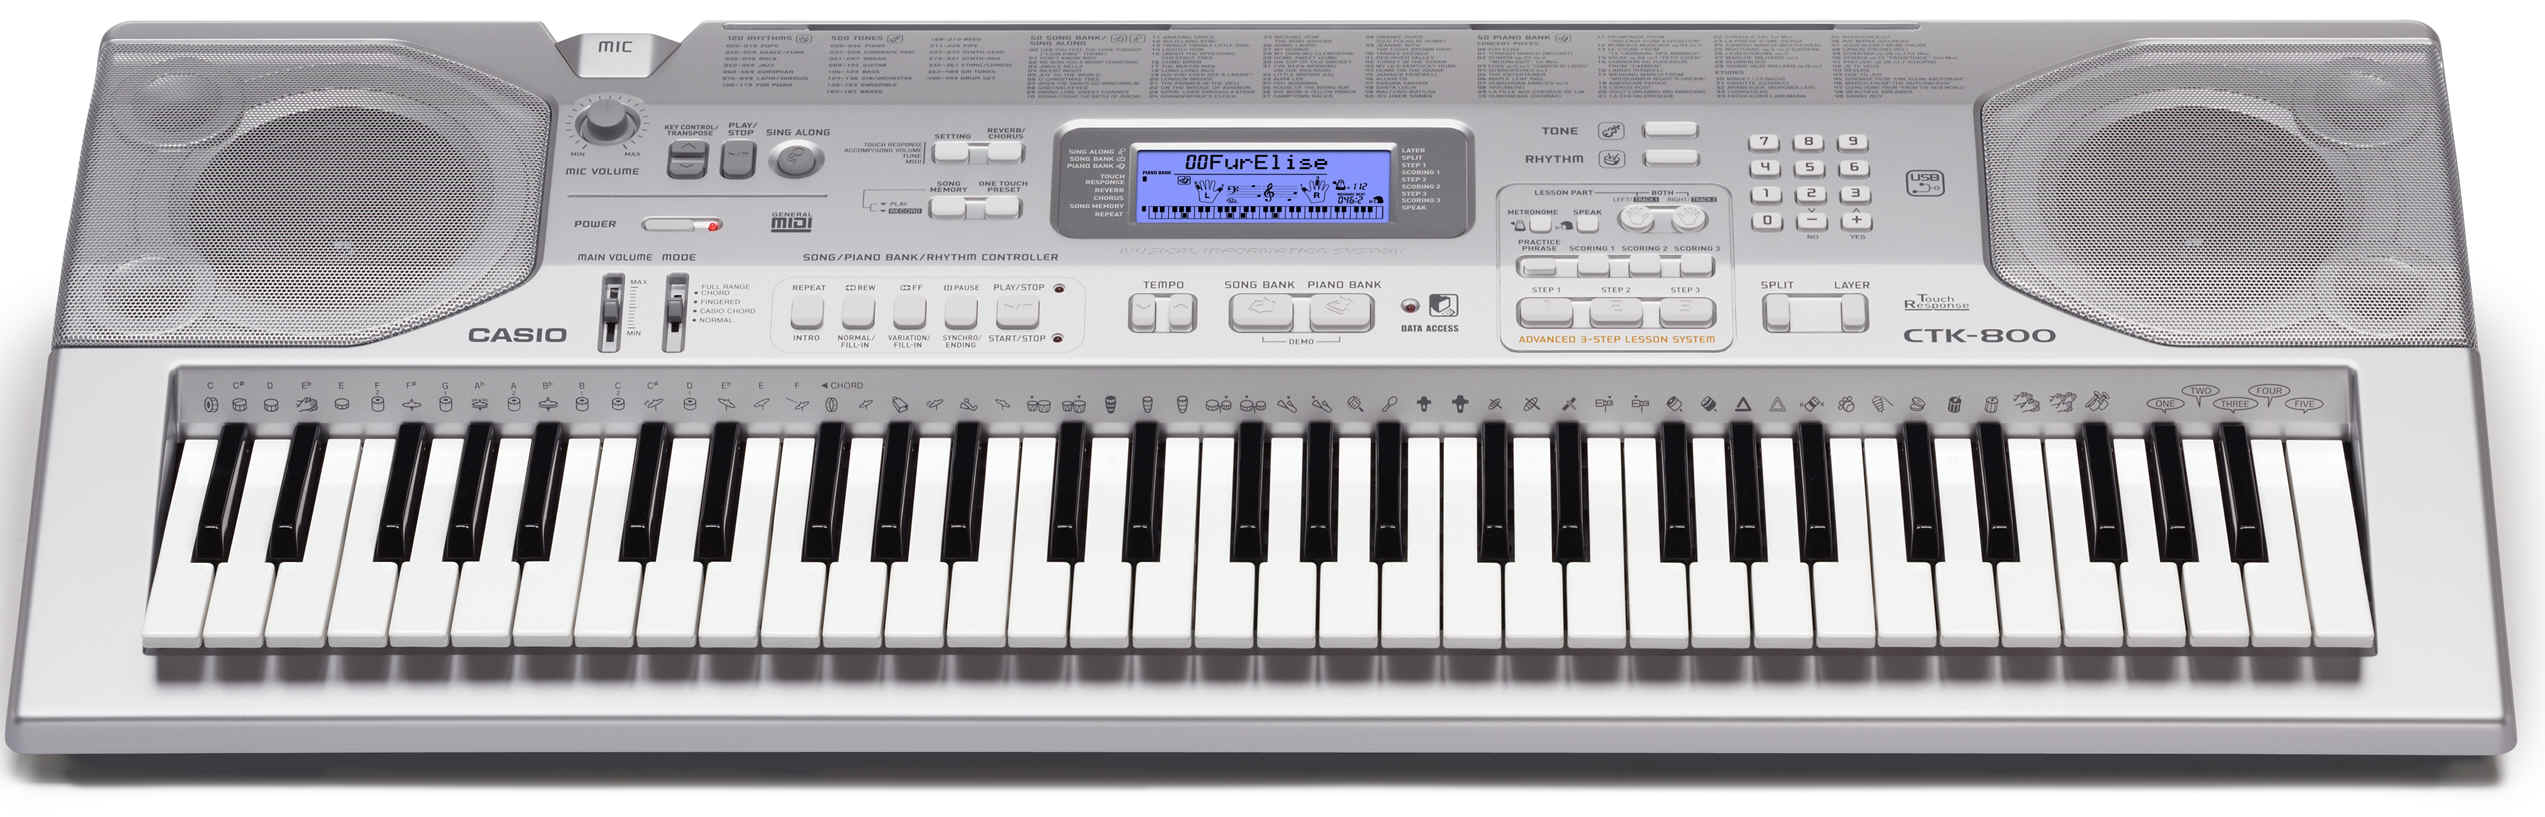 ctk 496 casio keyboard manual